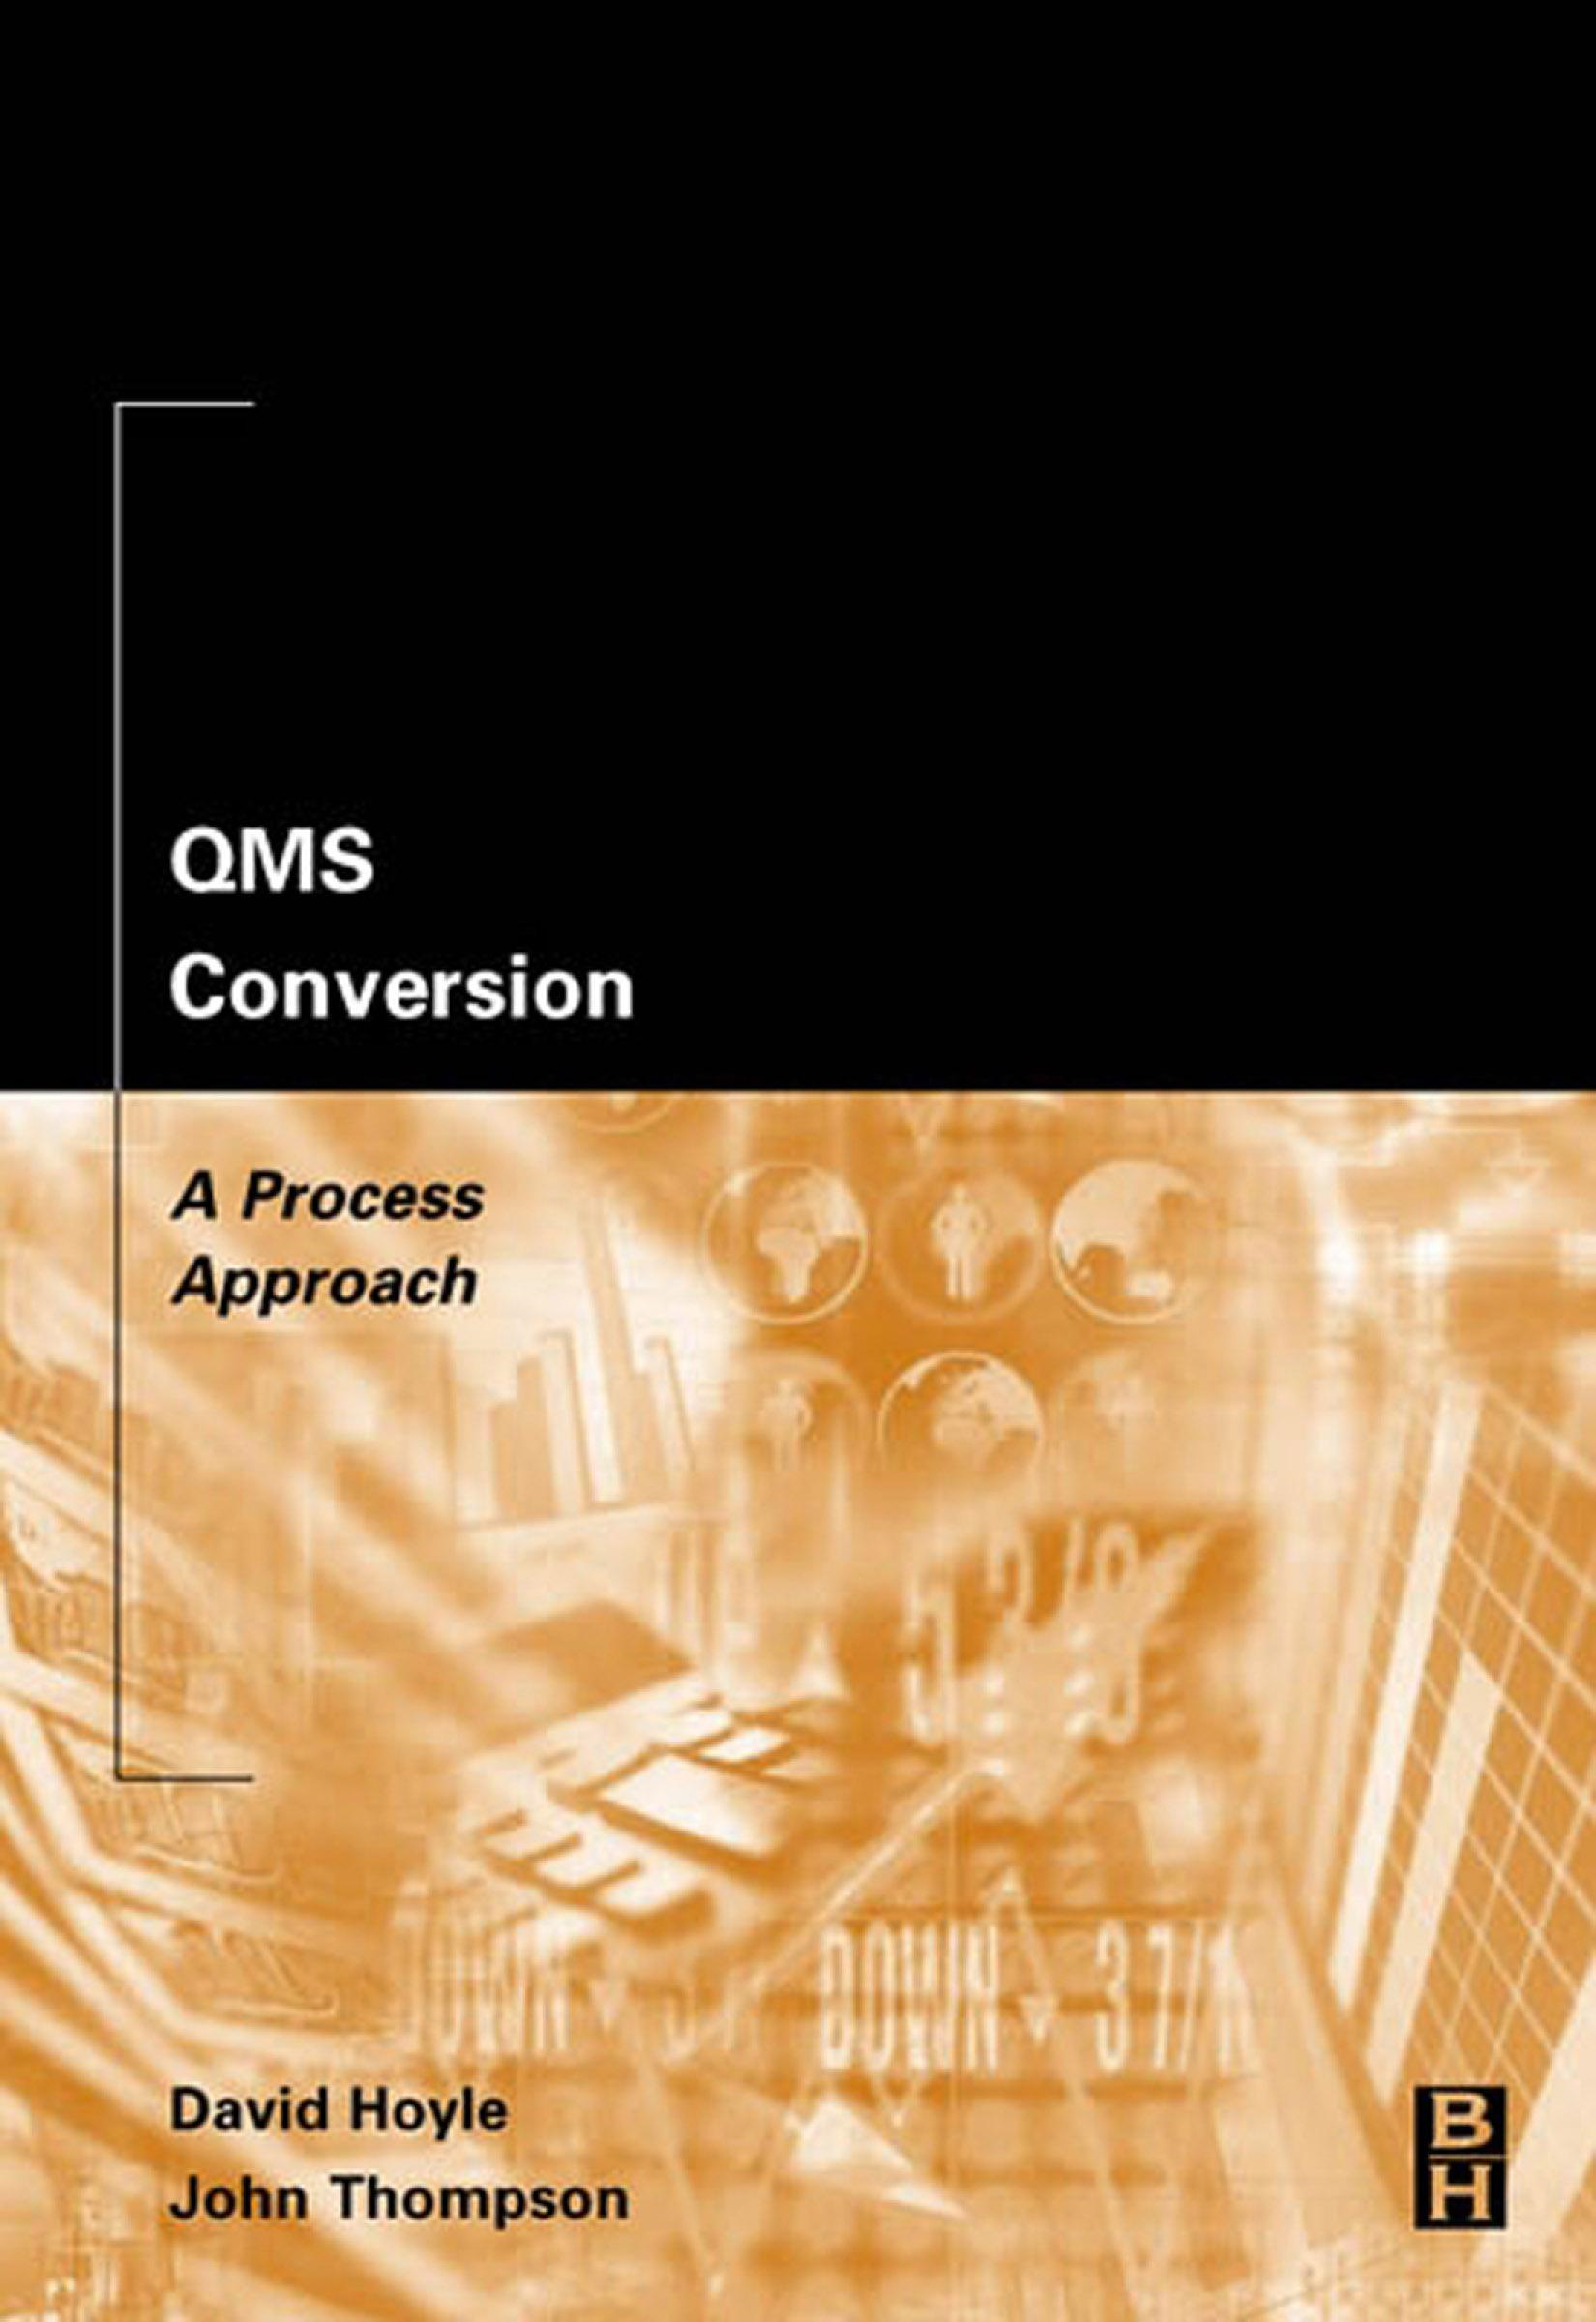 QMS Conversion: A Process Approach: A Process Approach